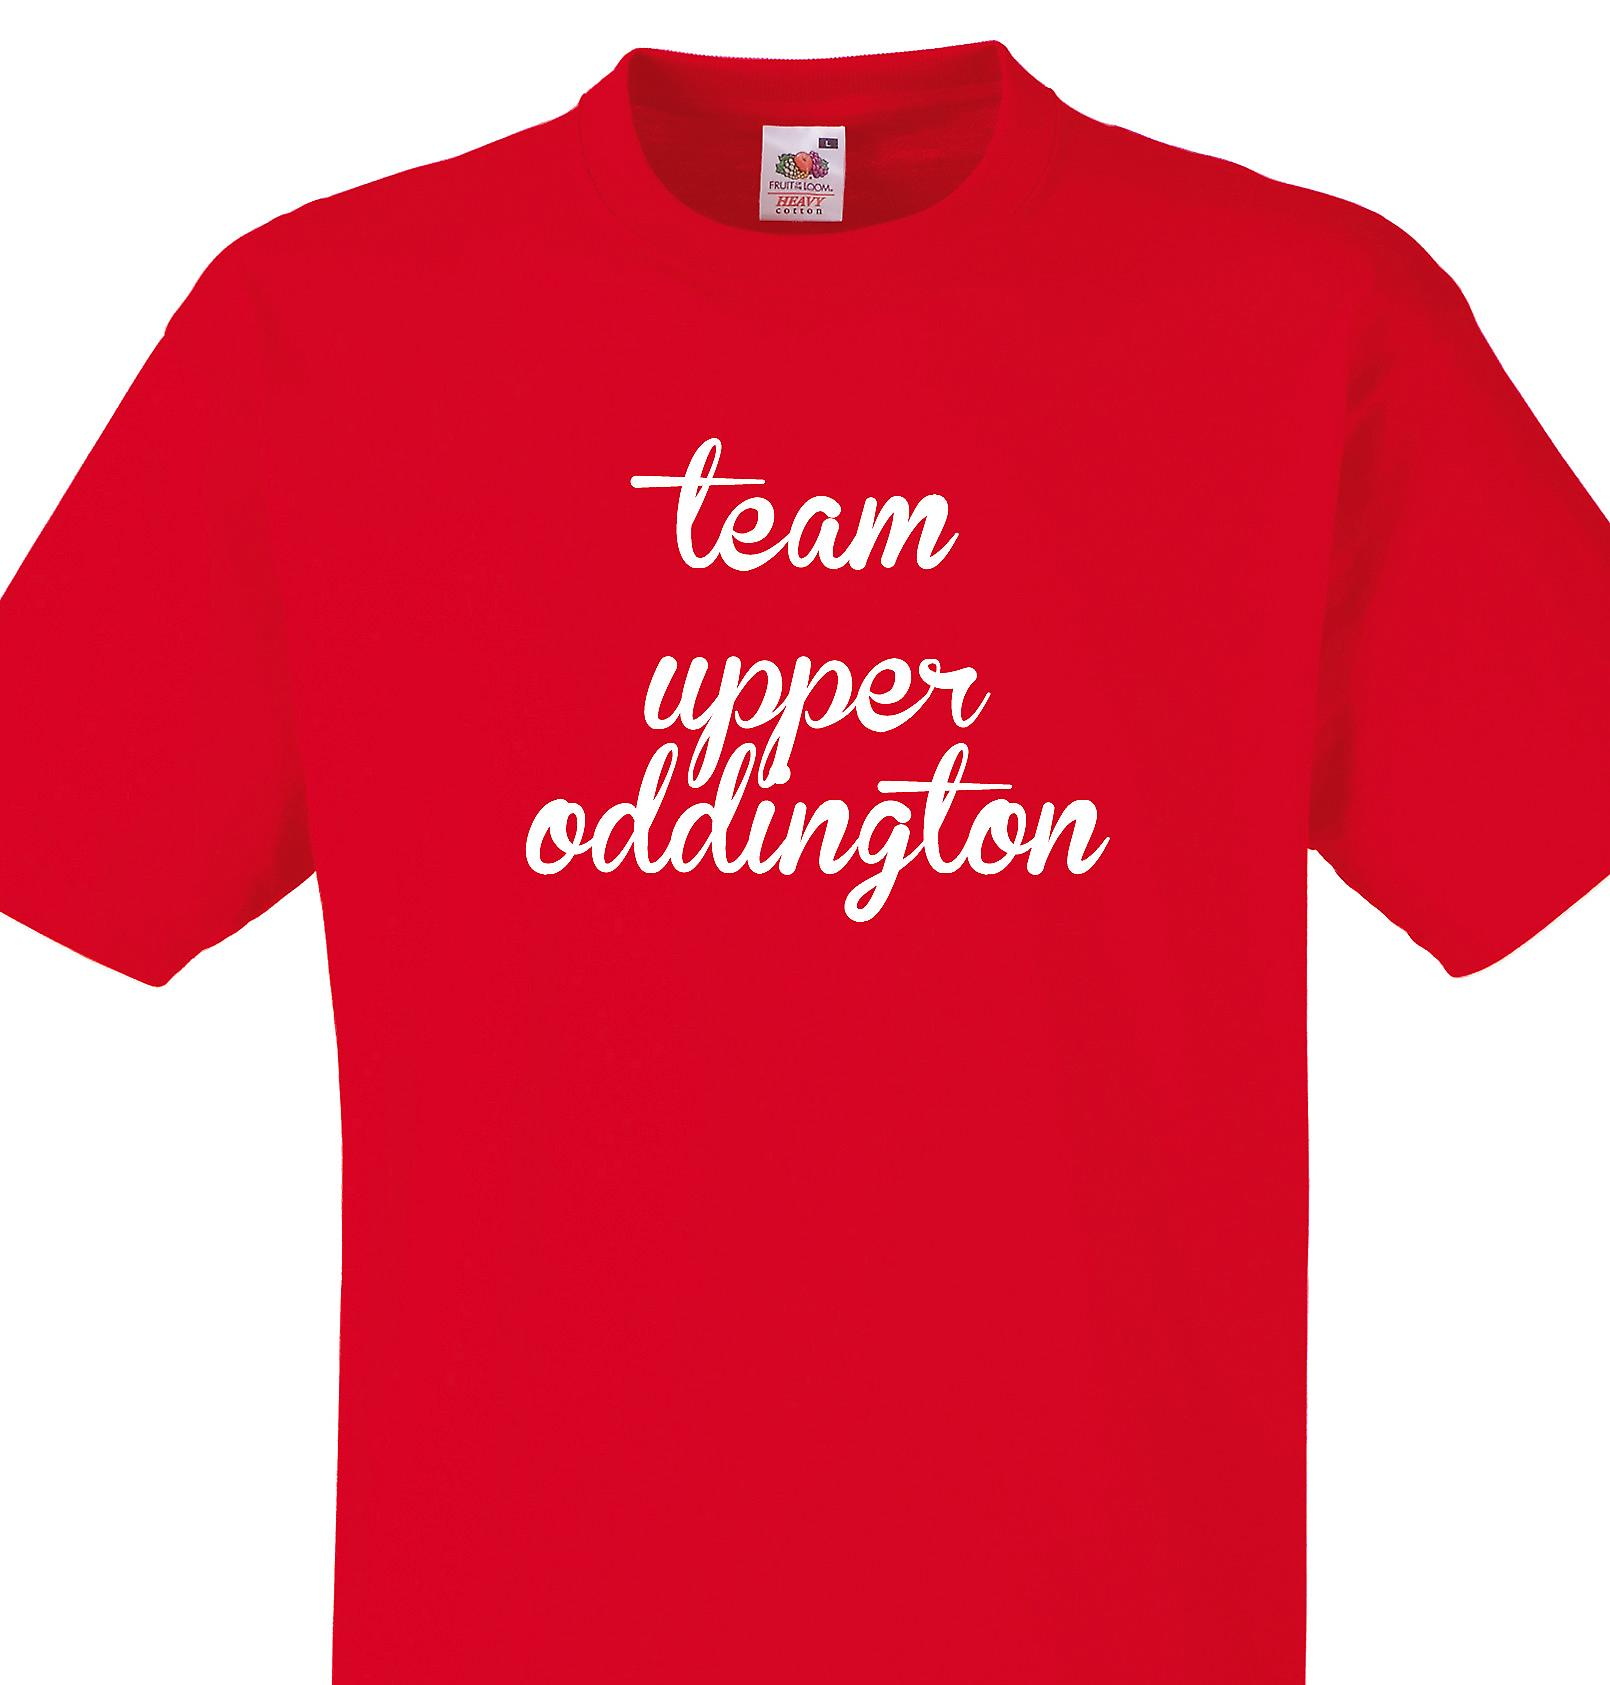 Team Upper oddington Red T shirt